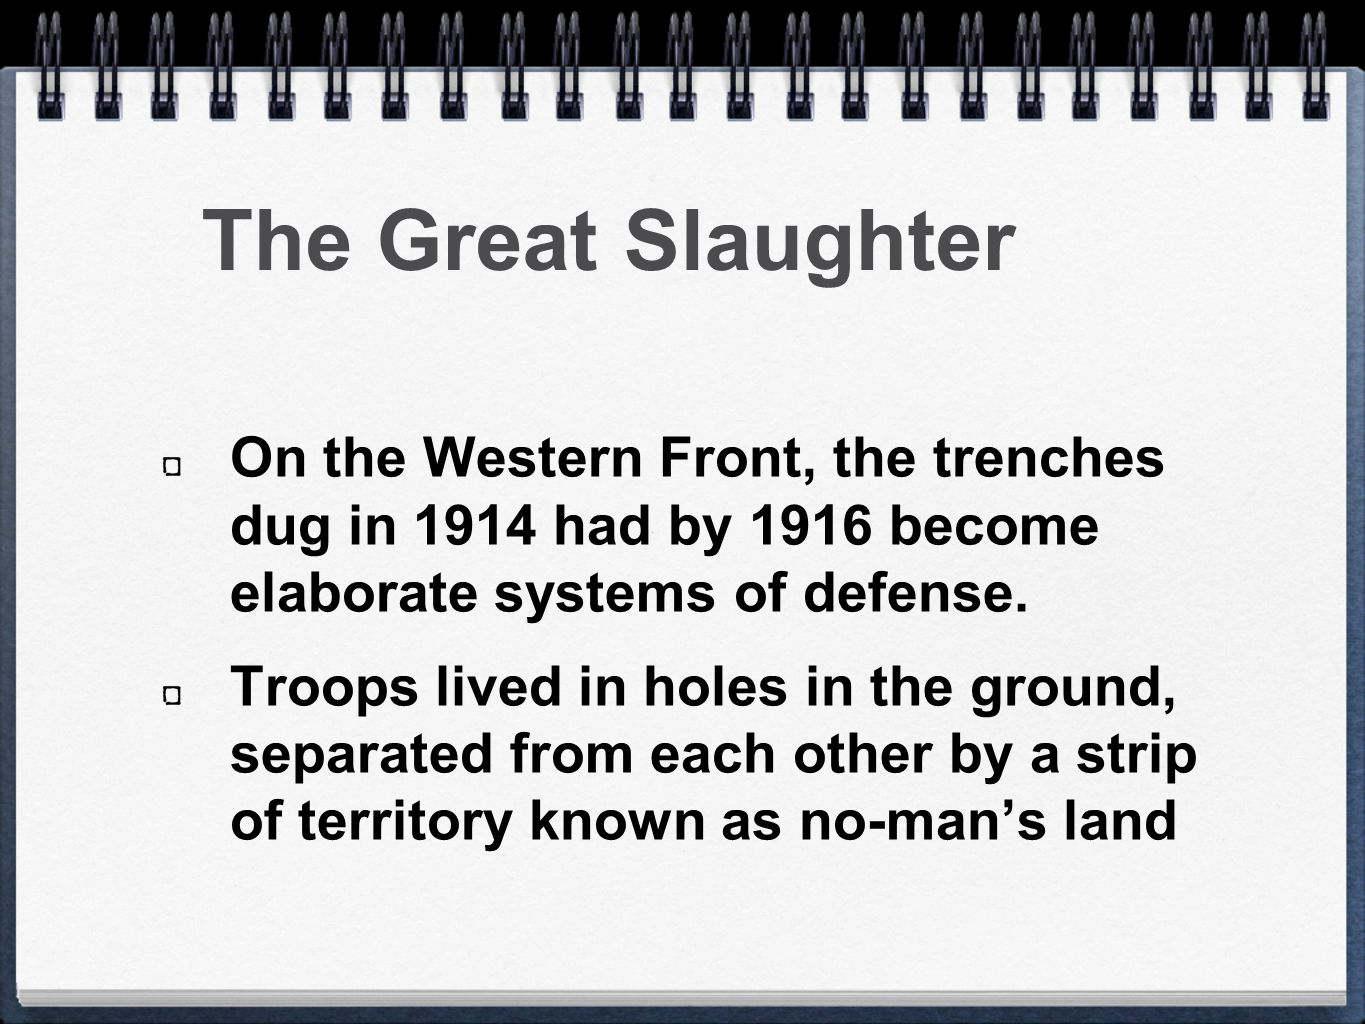 The Great Slaughter On the Western Front, the trenches dug in 1914 had by 1916 become elaborate systems of defense.